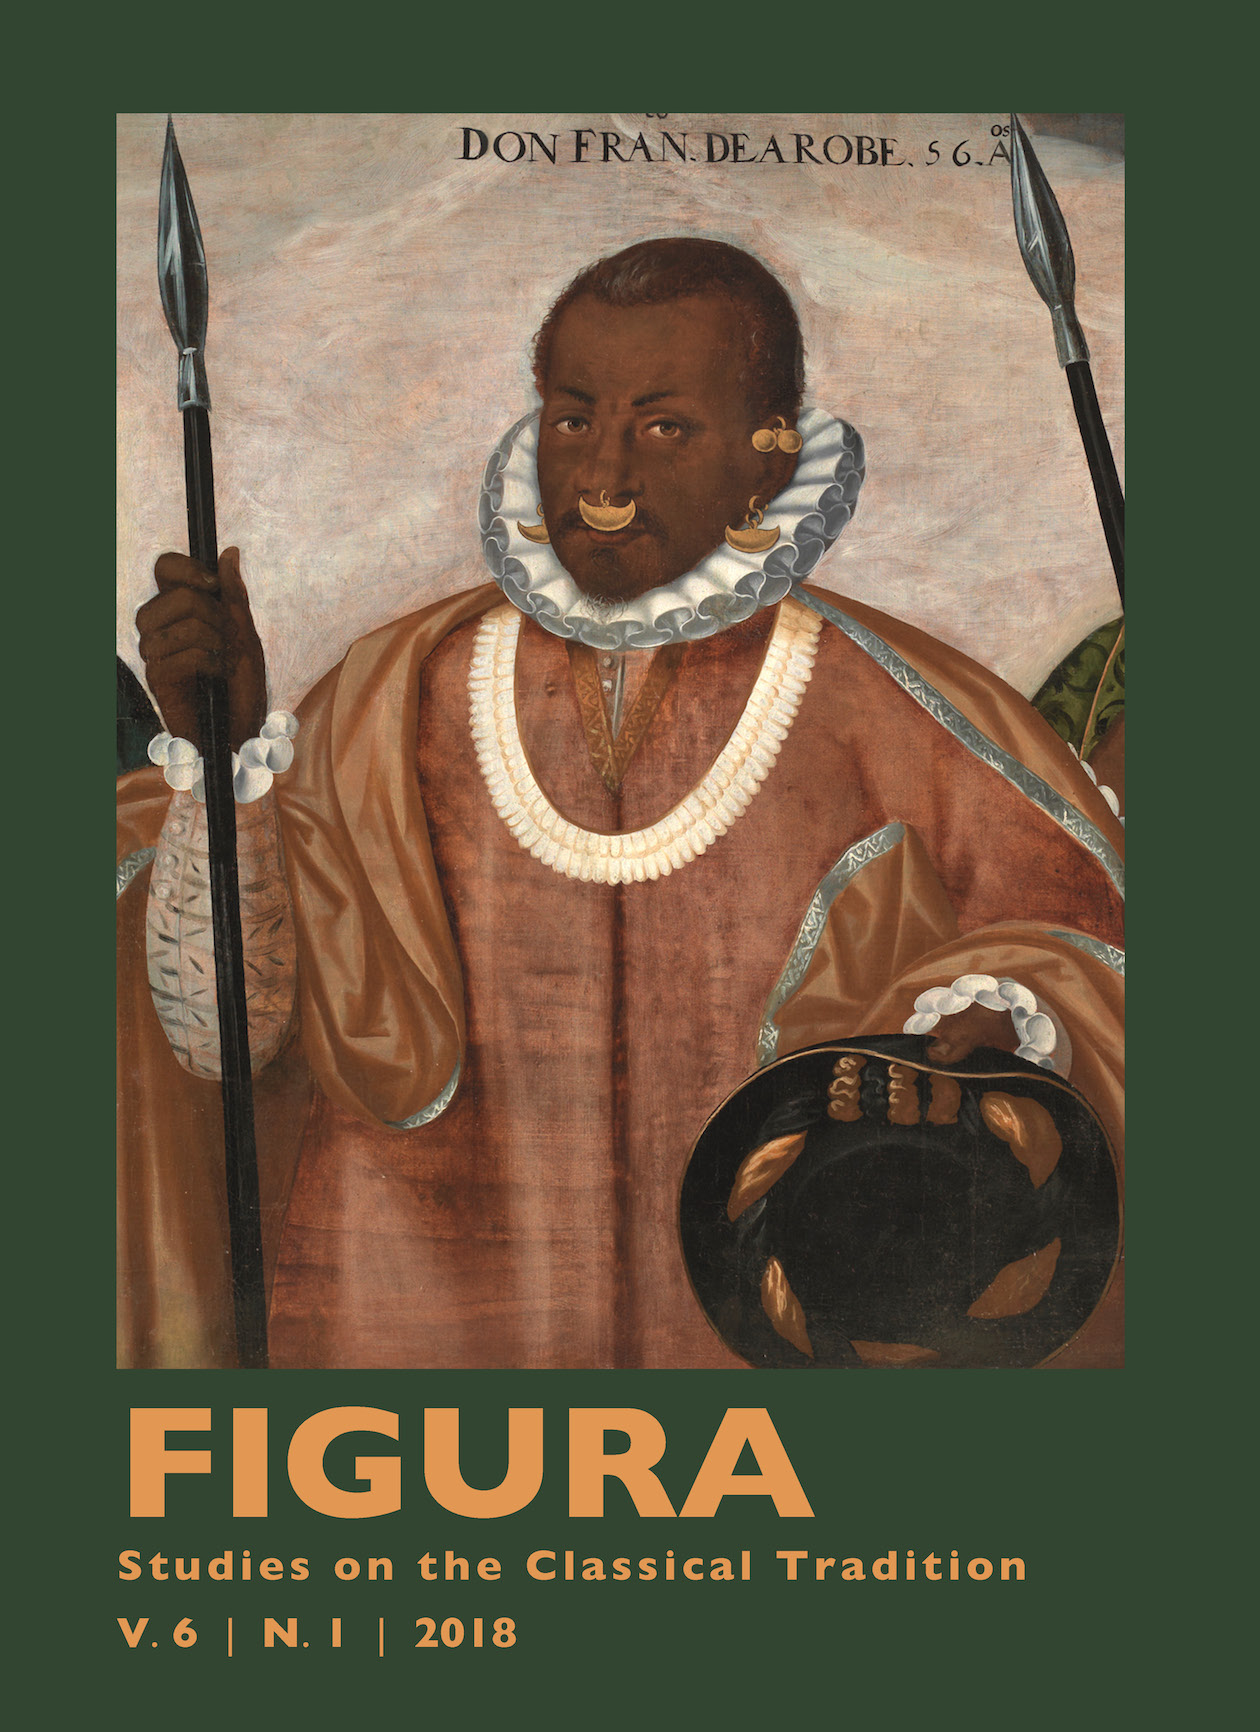 View Vol. 6 No. 1 (2018): Figura. Studies on the Classical Tradition